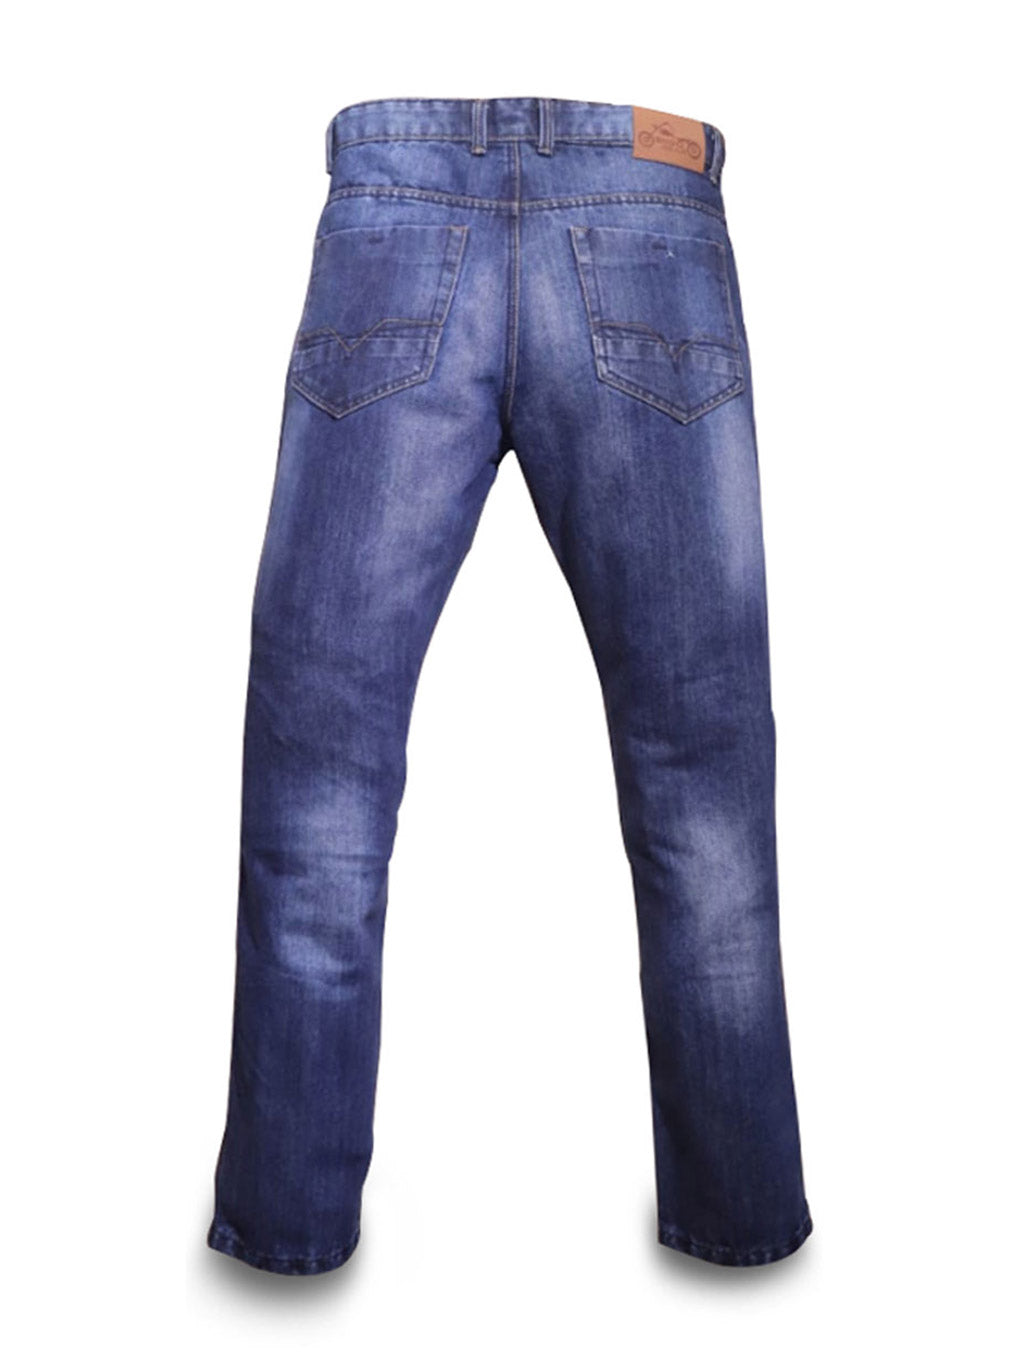 motorcycle riding jeans with armor